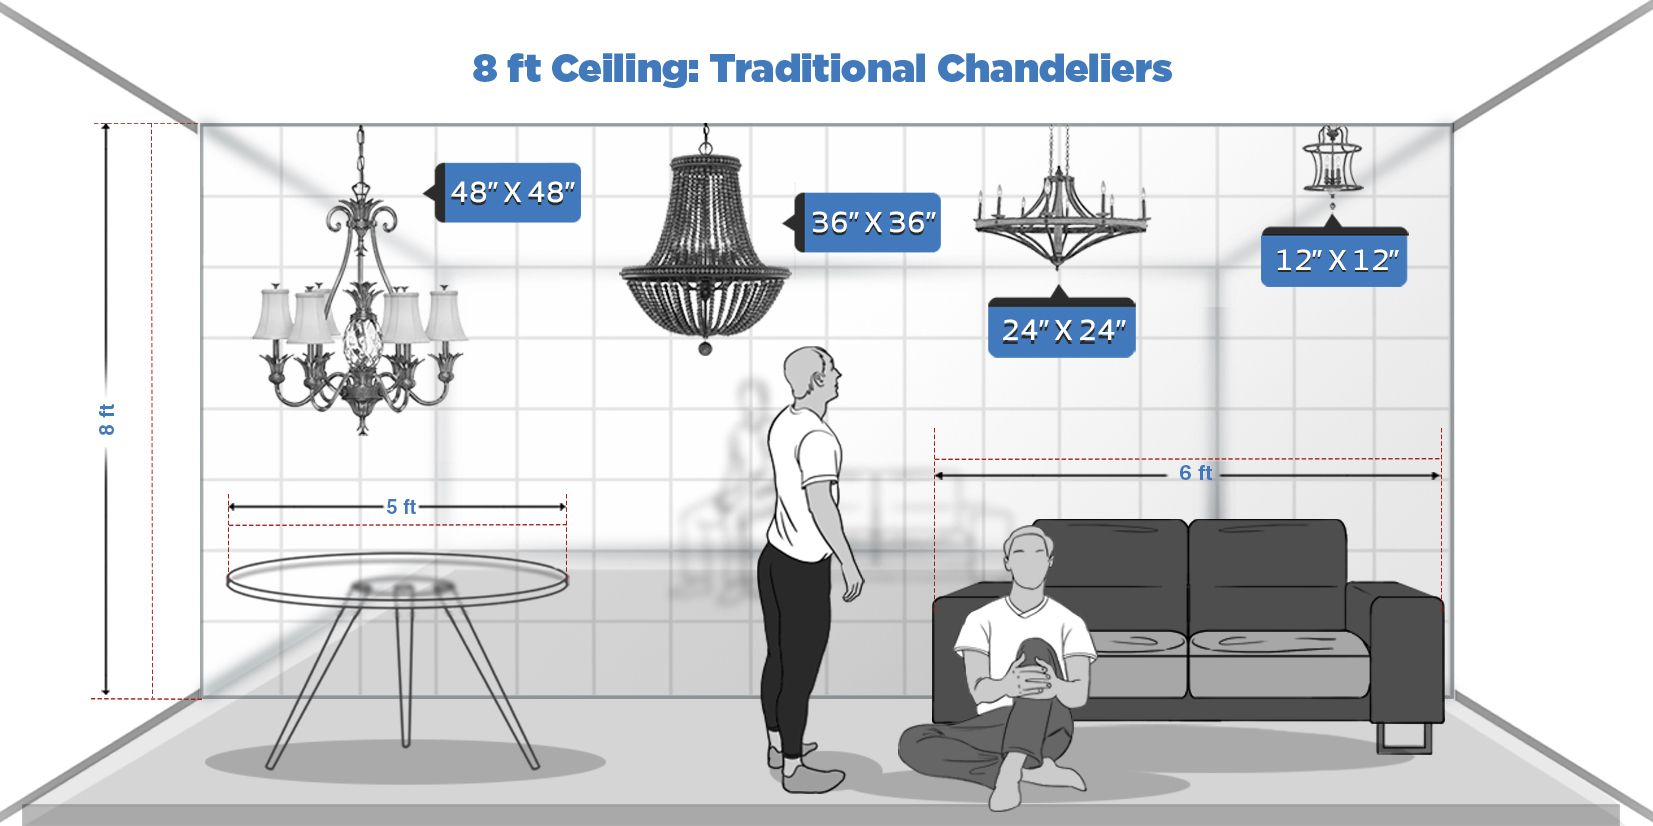 Chandelier Ceiling Height Guide To Scale Cheat Sheet Ceiling